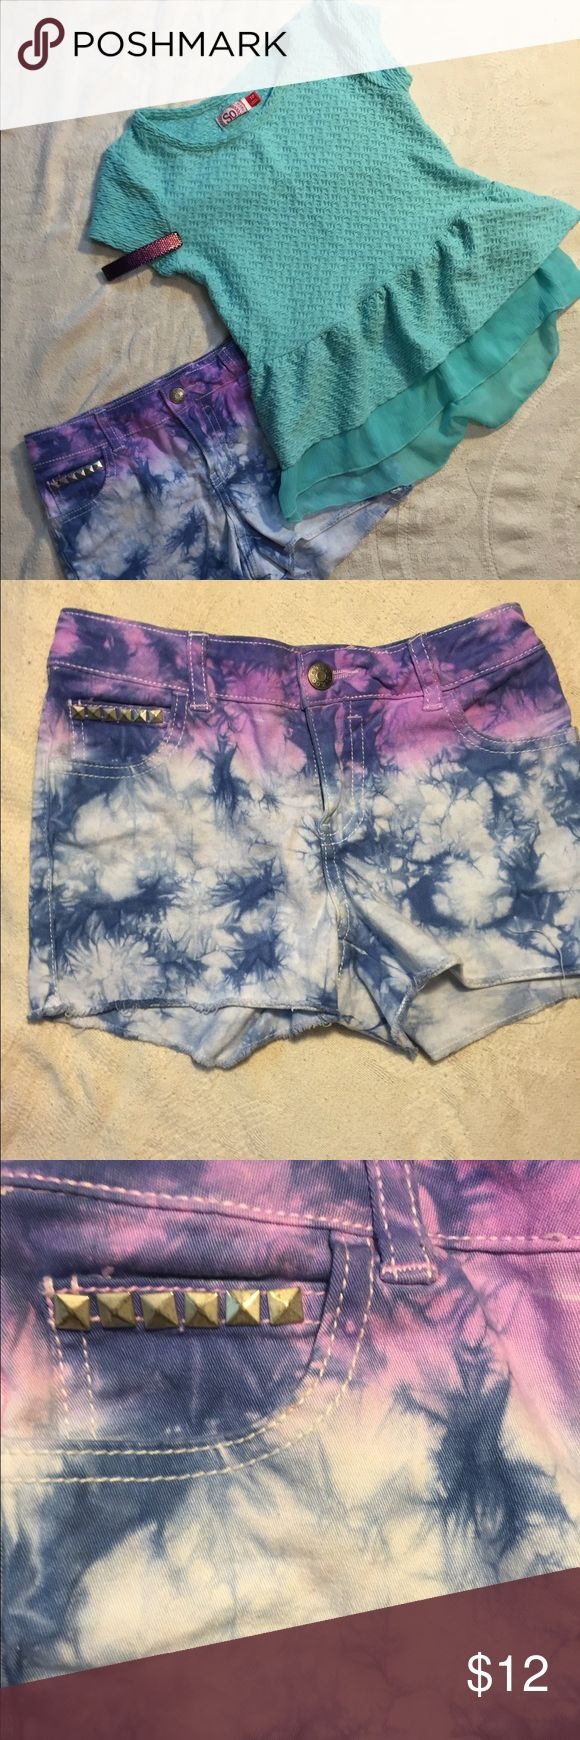 Back to school shorts/top bundle Super cute and barely worn Circo shorts and tunic style top ( I don't think my daughter ever wore this!). Cool studs on ombre acid wash shorts. Very sweet chiffon ruffled top. Will separate. Circo Shirts & Tops